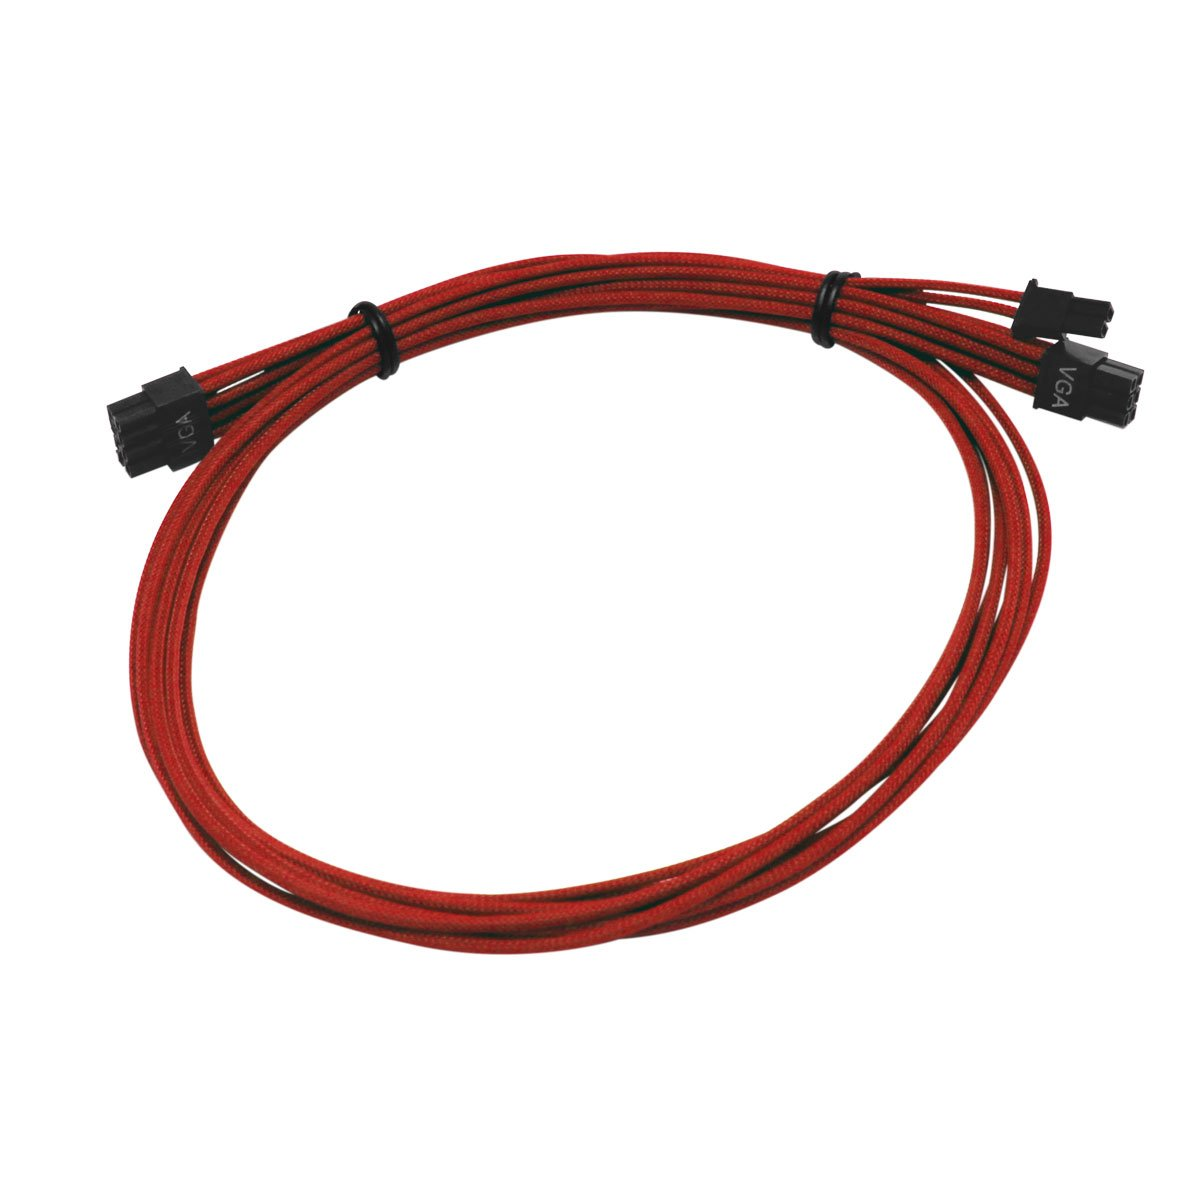 EVGA G2/G3/P2/T2  100-CR-1300-B9 Power Supply Cable Set (Individually Sleeved), Red by EVGA (Image #2)